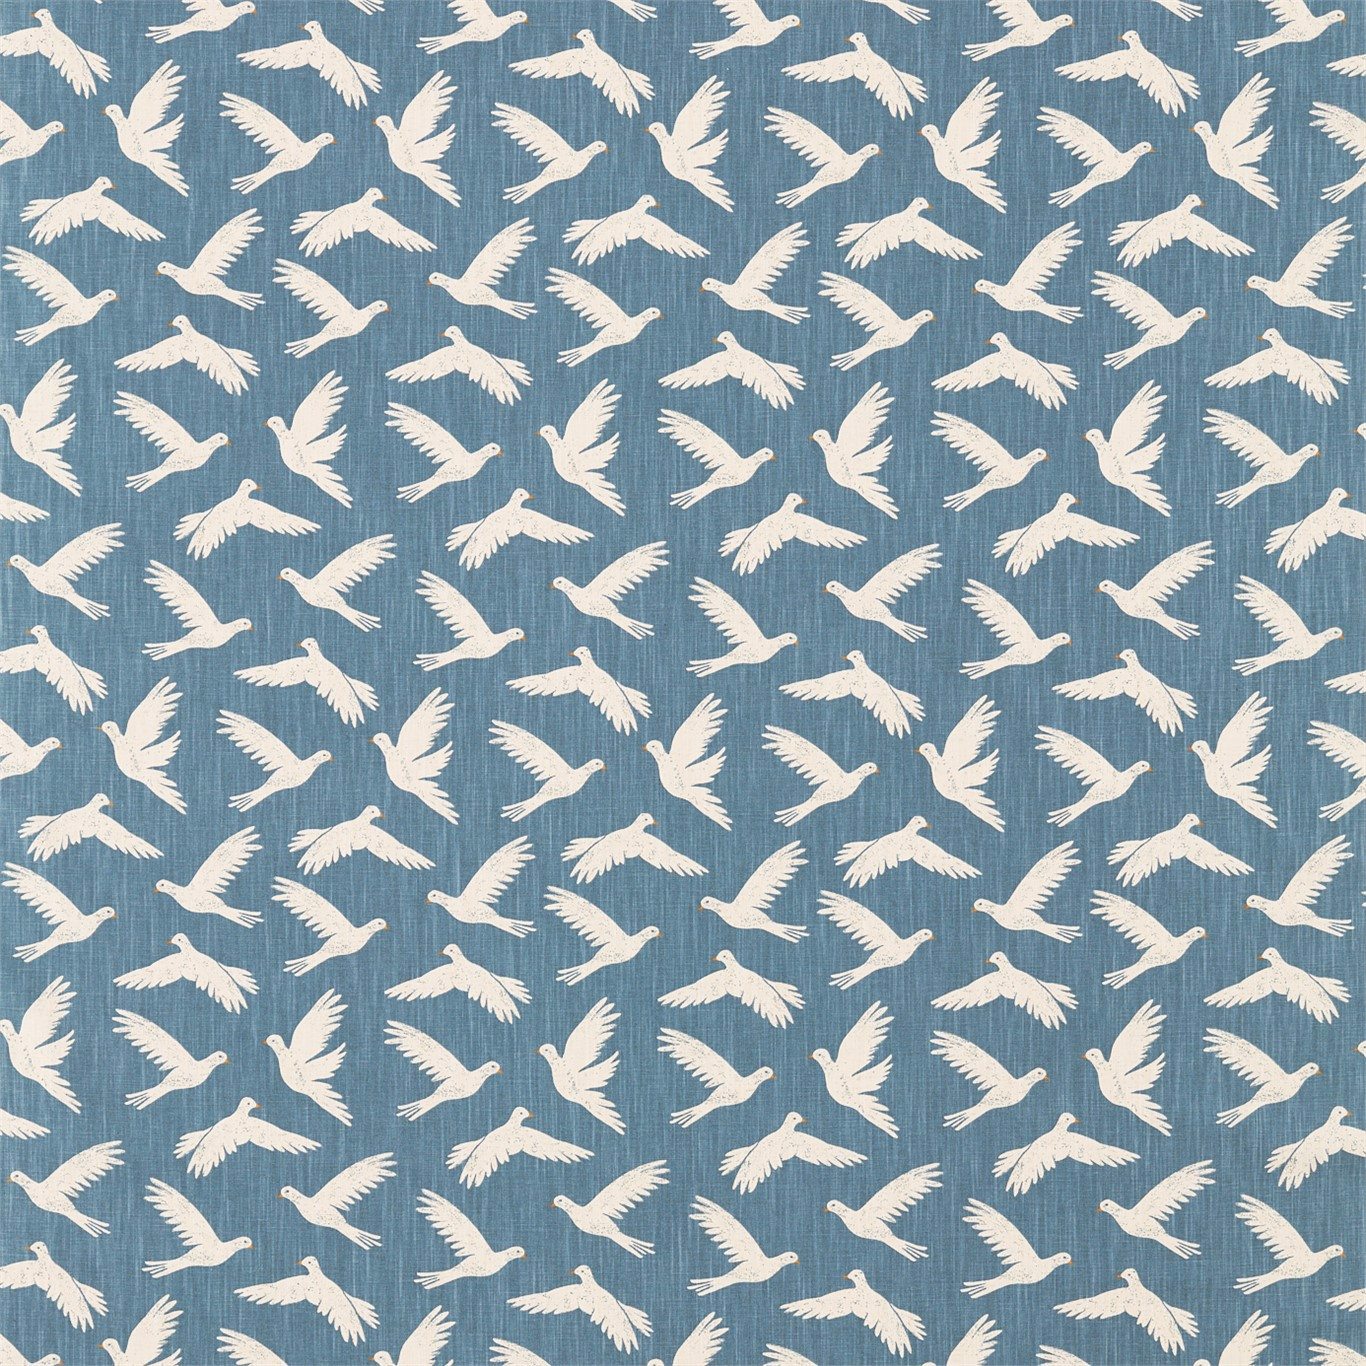 Paper Doves by HOM